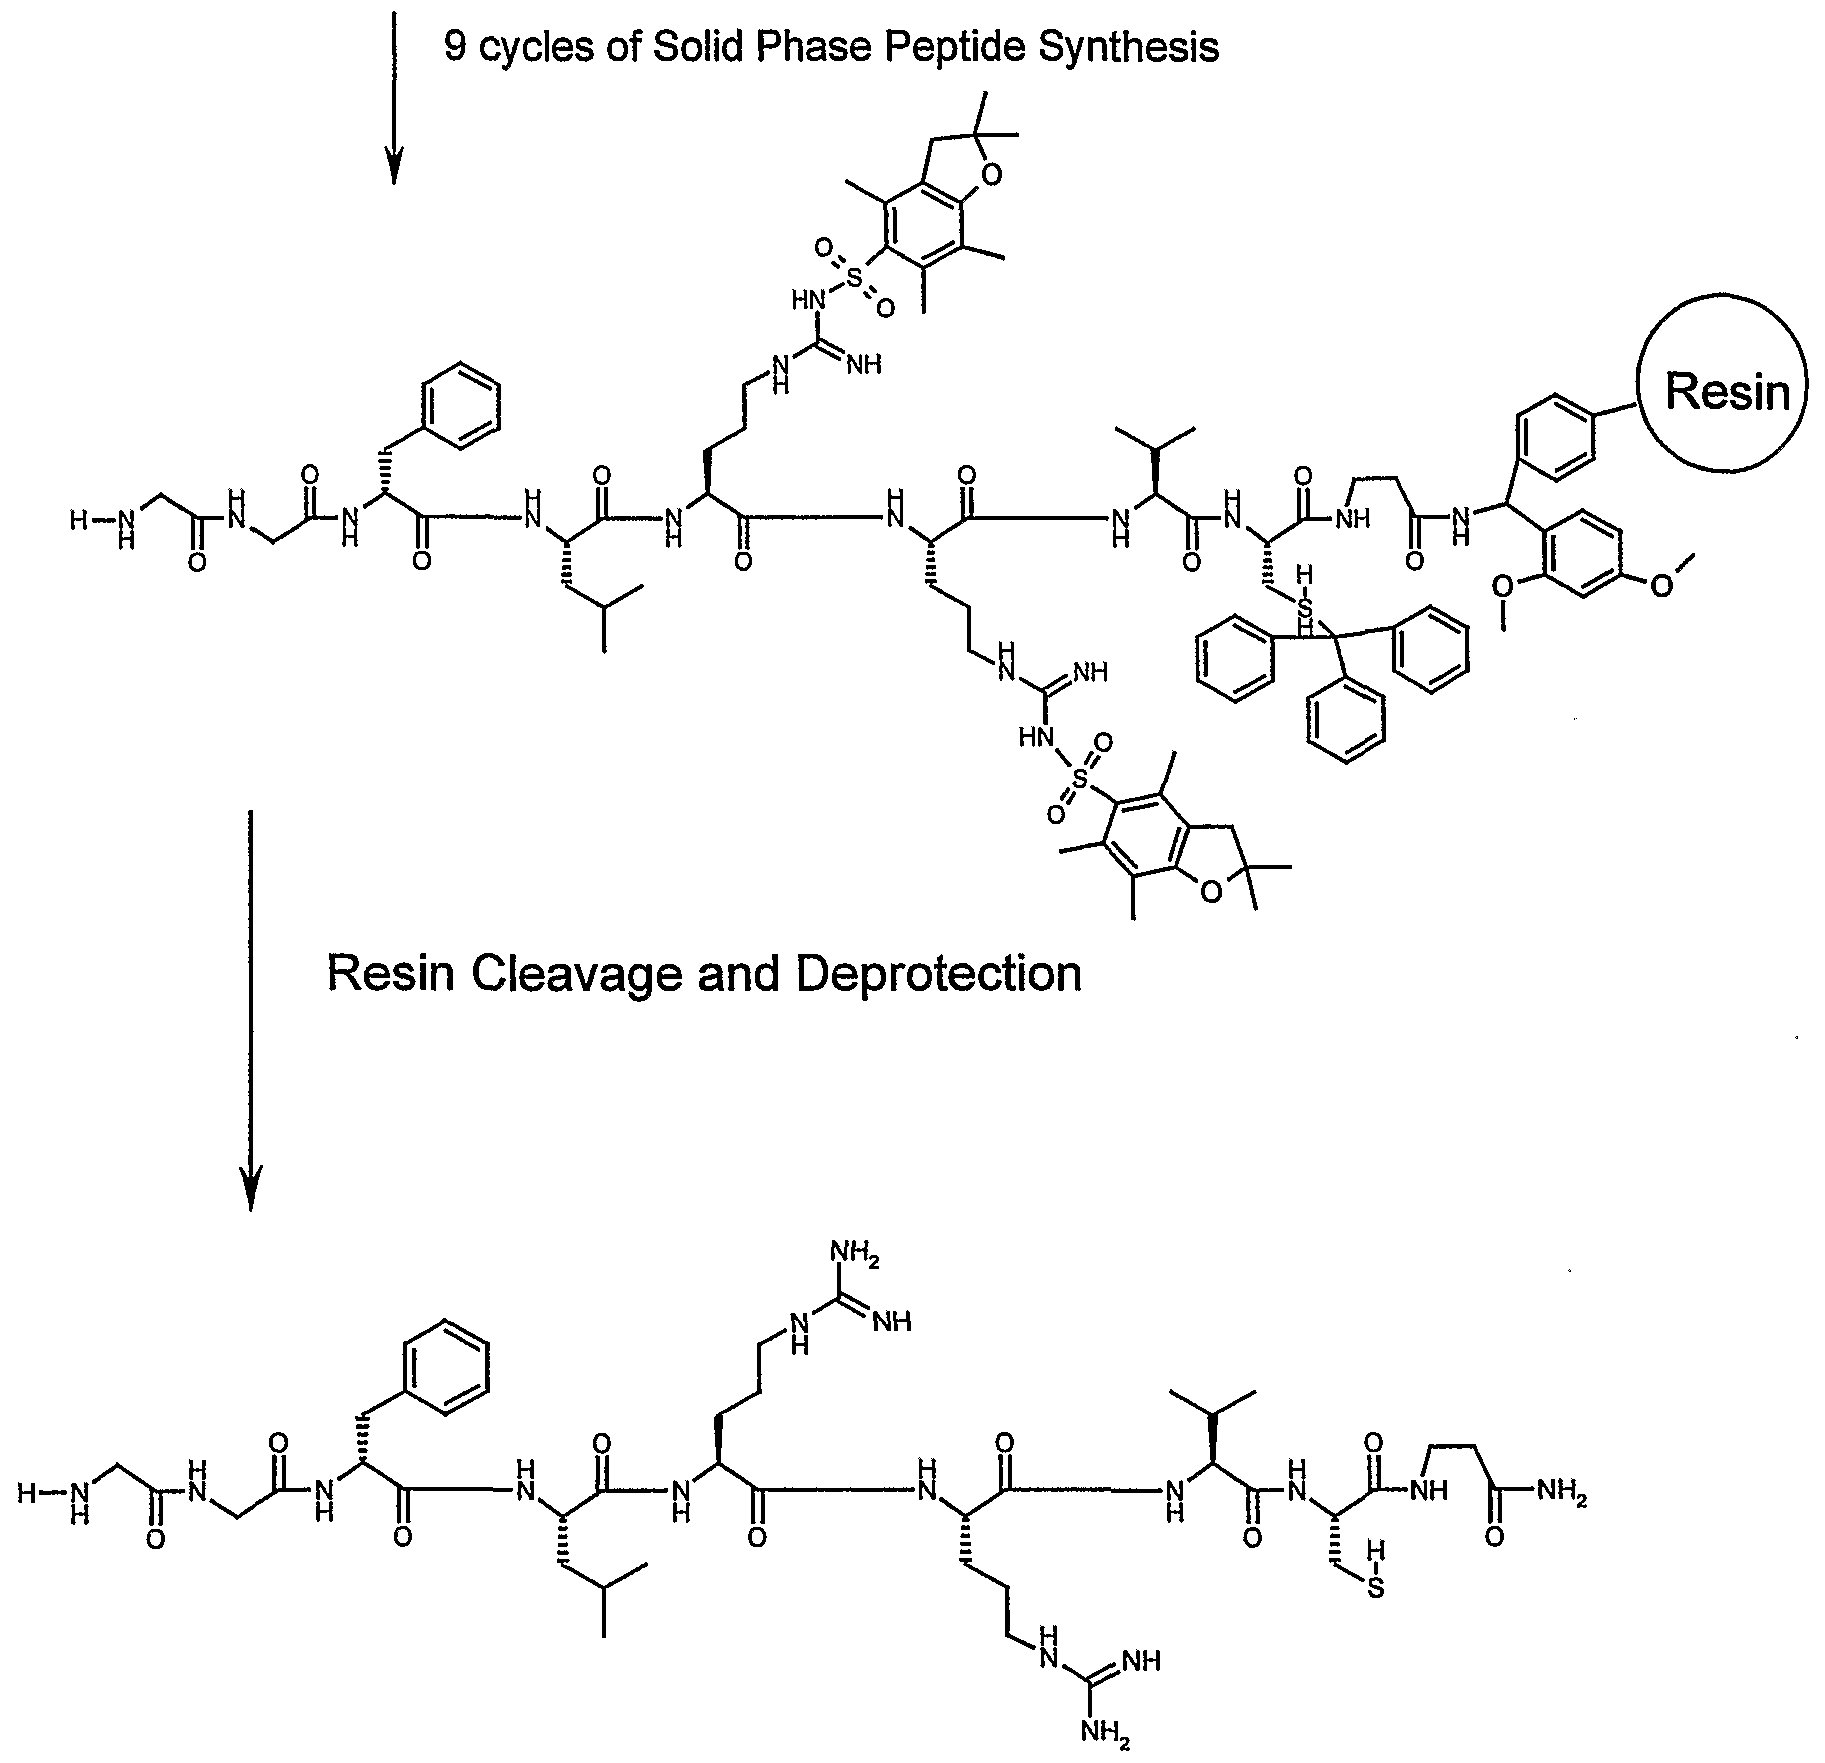 solid phase peptide synthesis thesis Chempep supplies custom peptides, catalog peptides, generic peptides, cosmetic peptides, antibodies, fmoc amino acids, boc amino acids, cbz amino acids, unusual amino acids, solid phase resins, linkers, peptide coupling reagents, n-protecting reagents specializing in custom peptide synthesis.